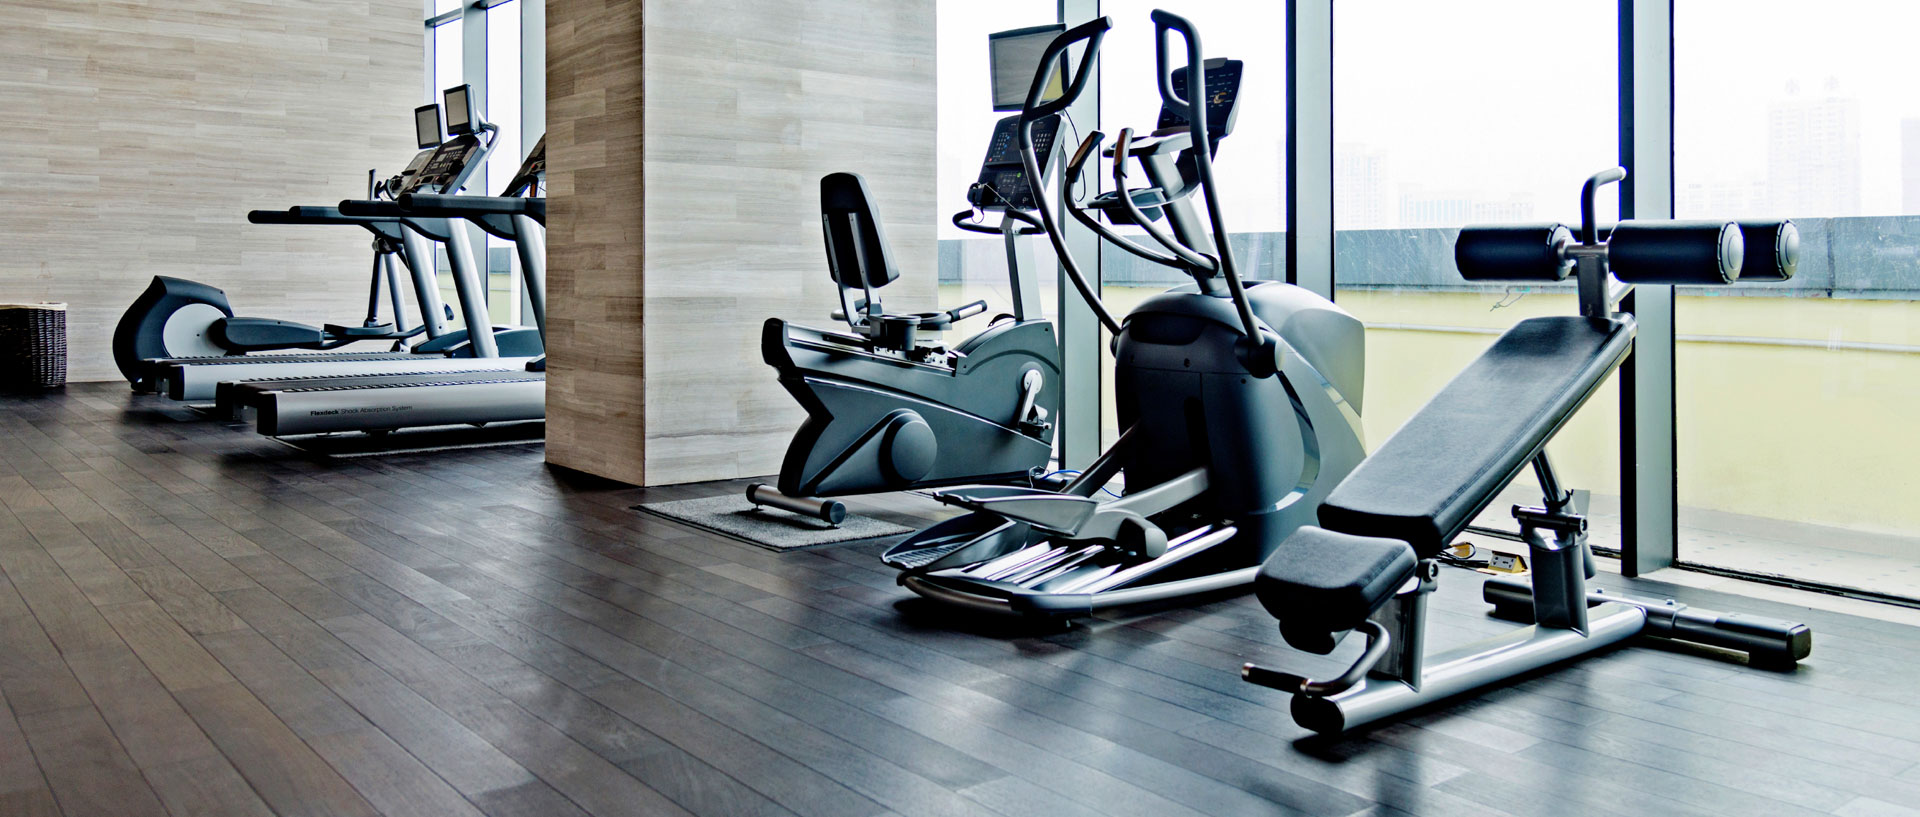 Buying Home Workout Machines From Charlotte Fitness Equipment Dealers